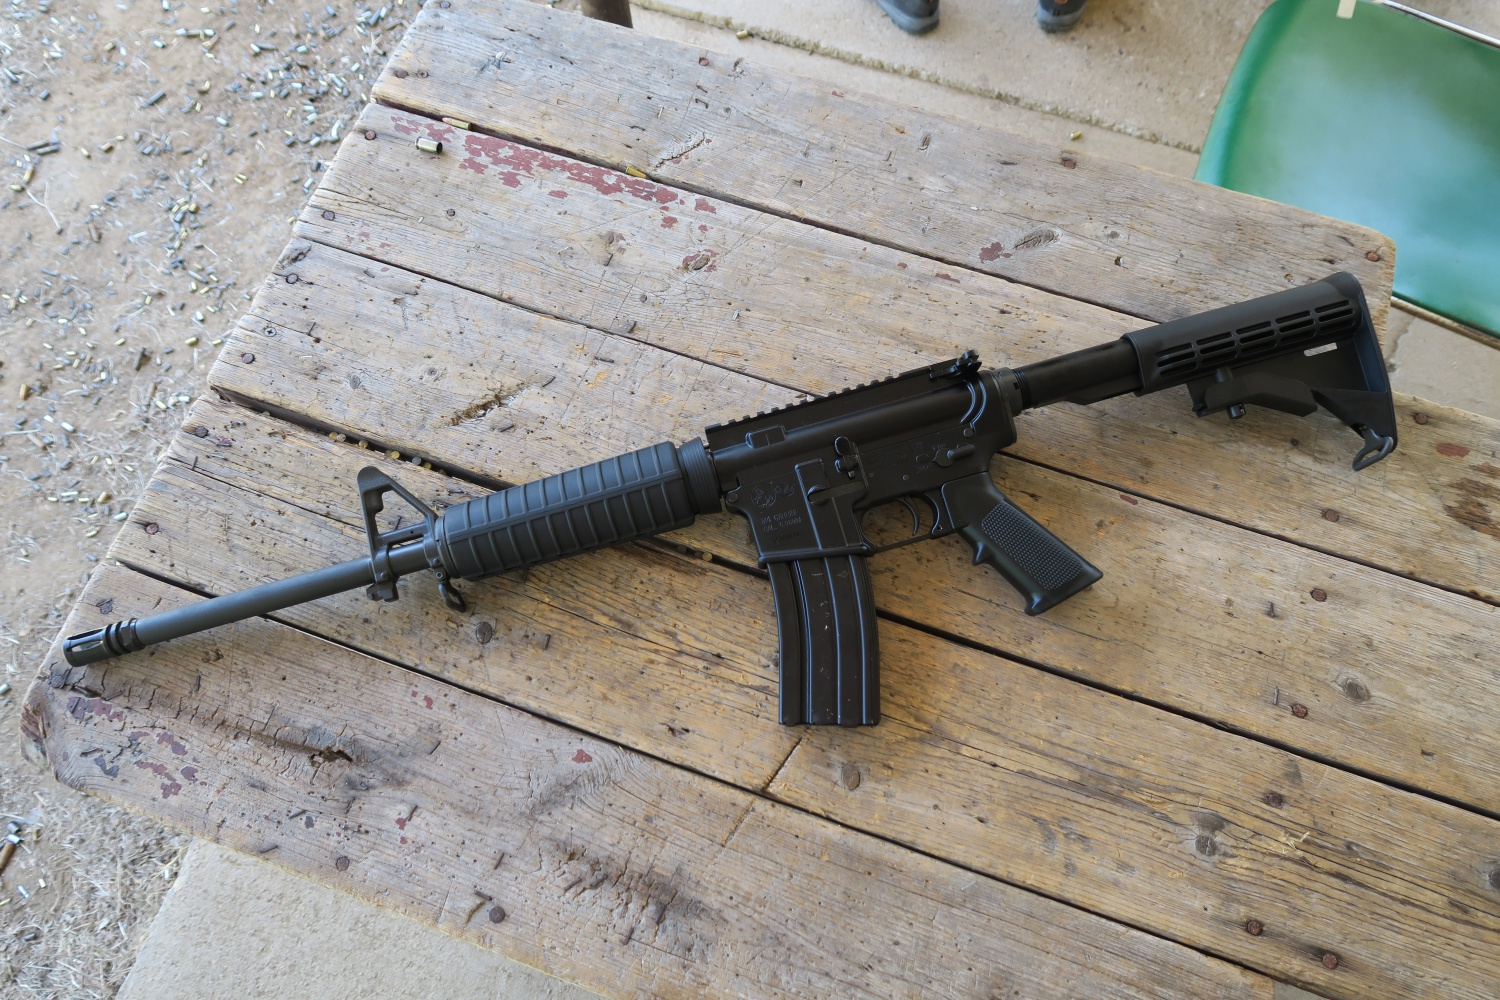 Gun Review: Colt M4 Expanse Carbine CE1000 -The Firearm Blog